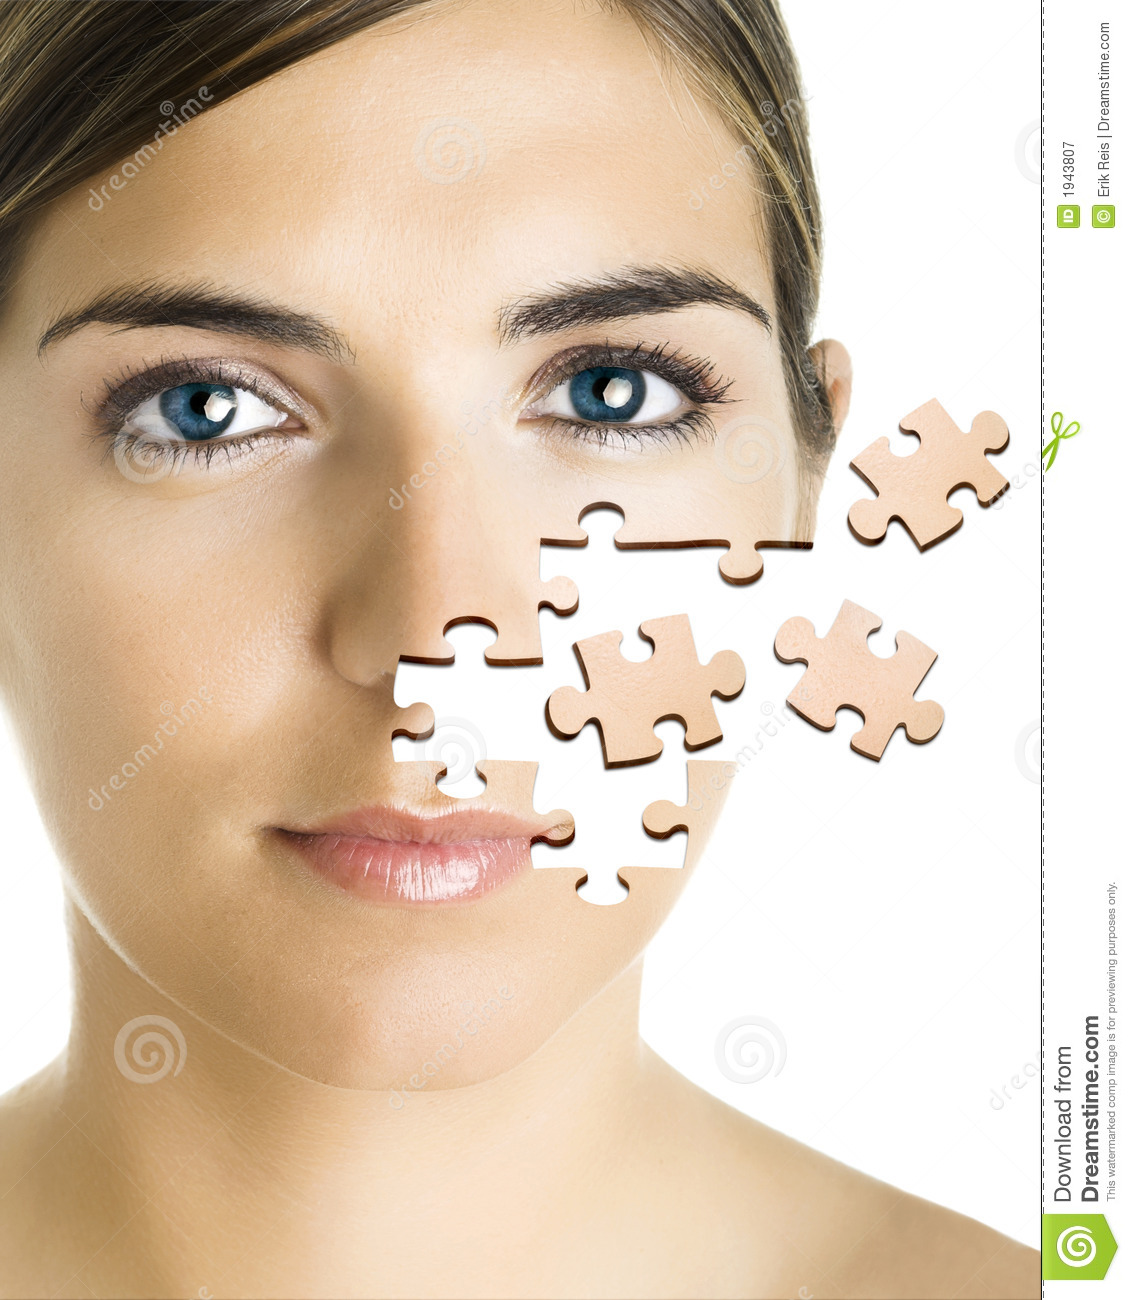 Concept image of a beautiful young woman with puzzle pieces on her